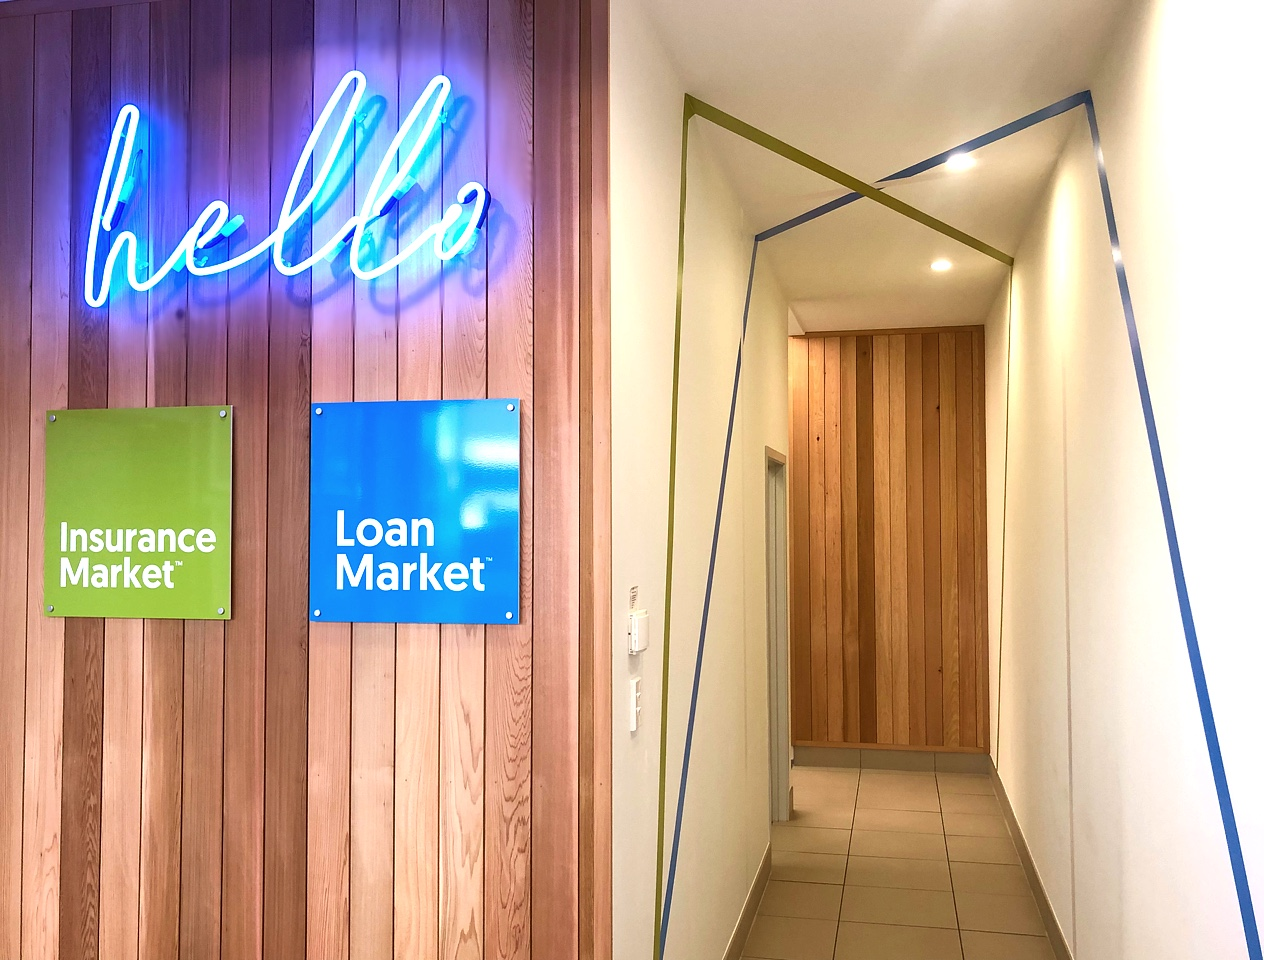 modern office hallway with blue neon hello sign on cedar wood panelling and blue and green stripe wall decals